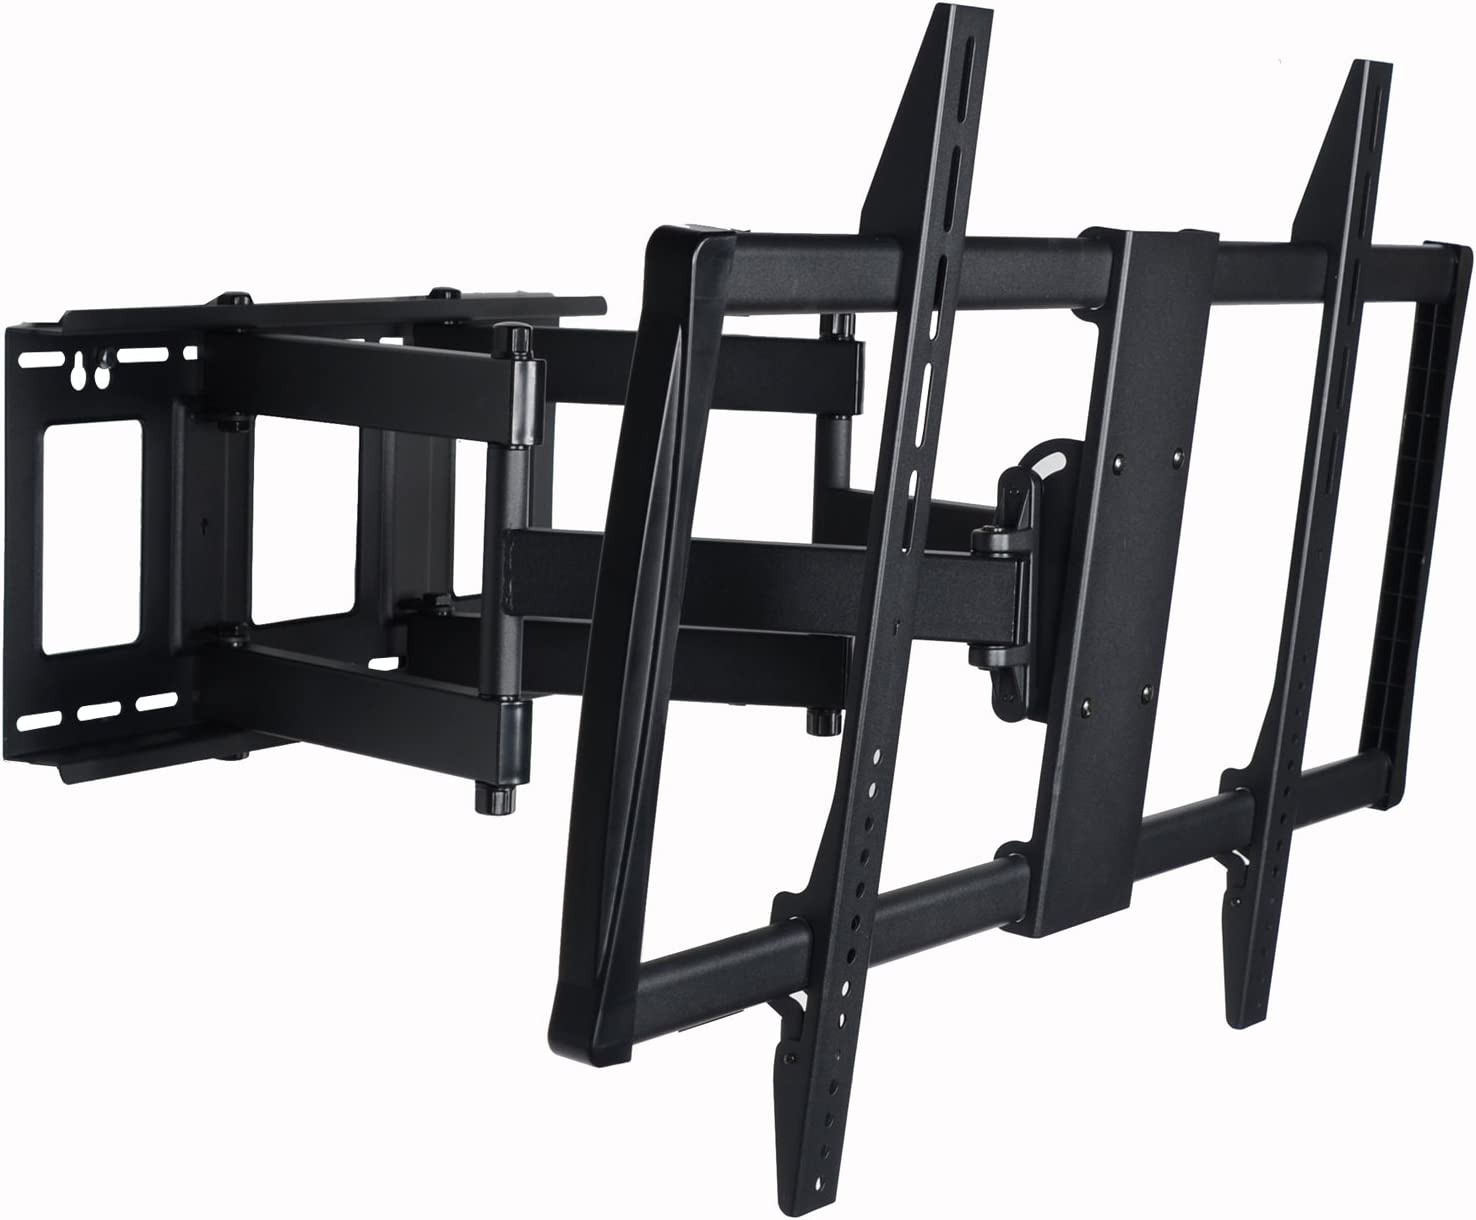 "VideoSecu Articulating TV Mount Large Big Heavy Duty Swivel Tilt Wall Mount Bracket for Most 60"" 62"" 65"" 70"" 75"" 78"" 80"", Some Models up to 85"" 90"" LED LCD Plasma TV- Dual Arm pulls Out up to 25"" 1YE"